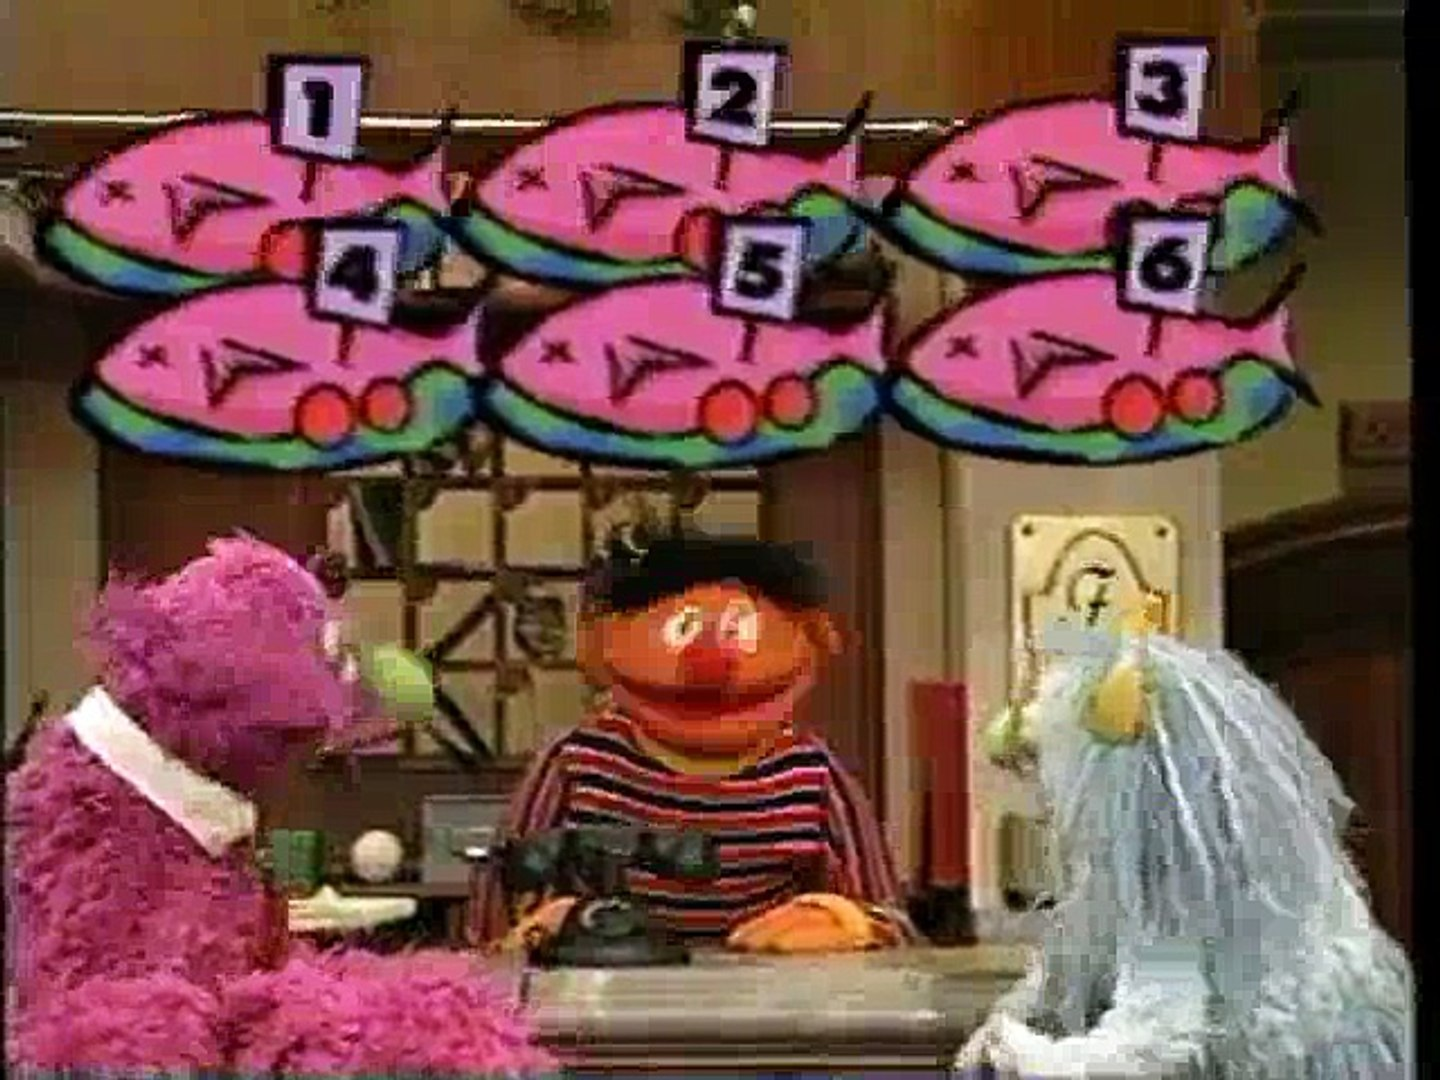 Sesame Street 123 Count With Me (1997)